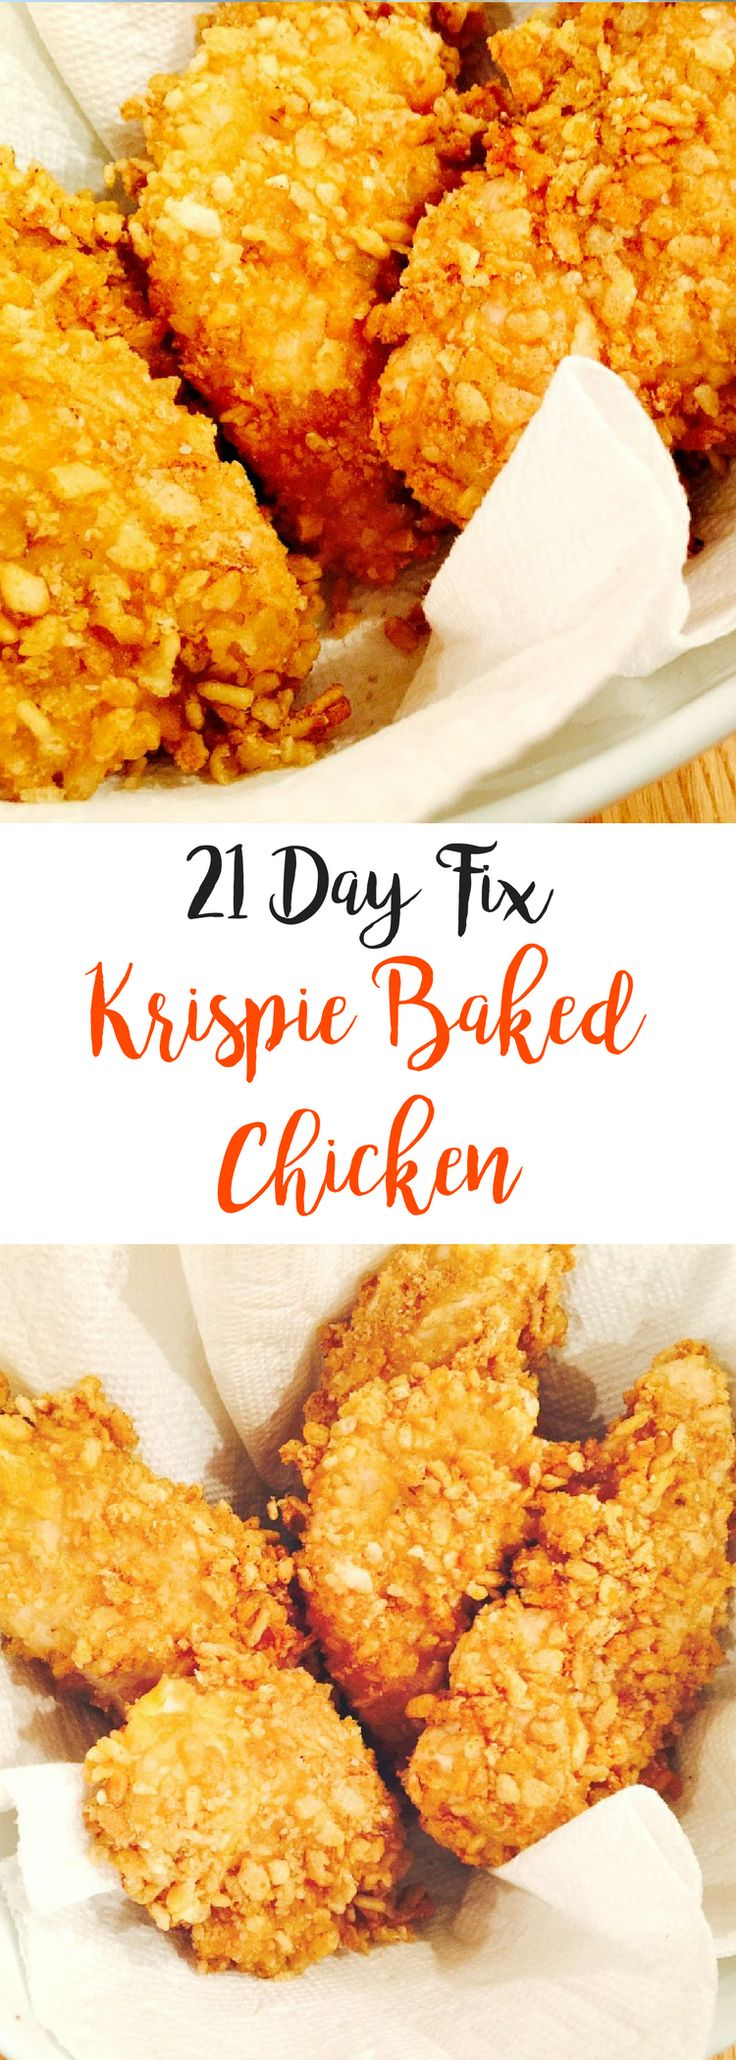 21 Day Fix Krispie Baked Chicken | Confessions of a Fit Foodie